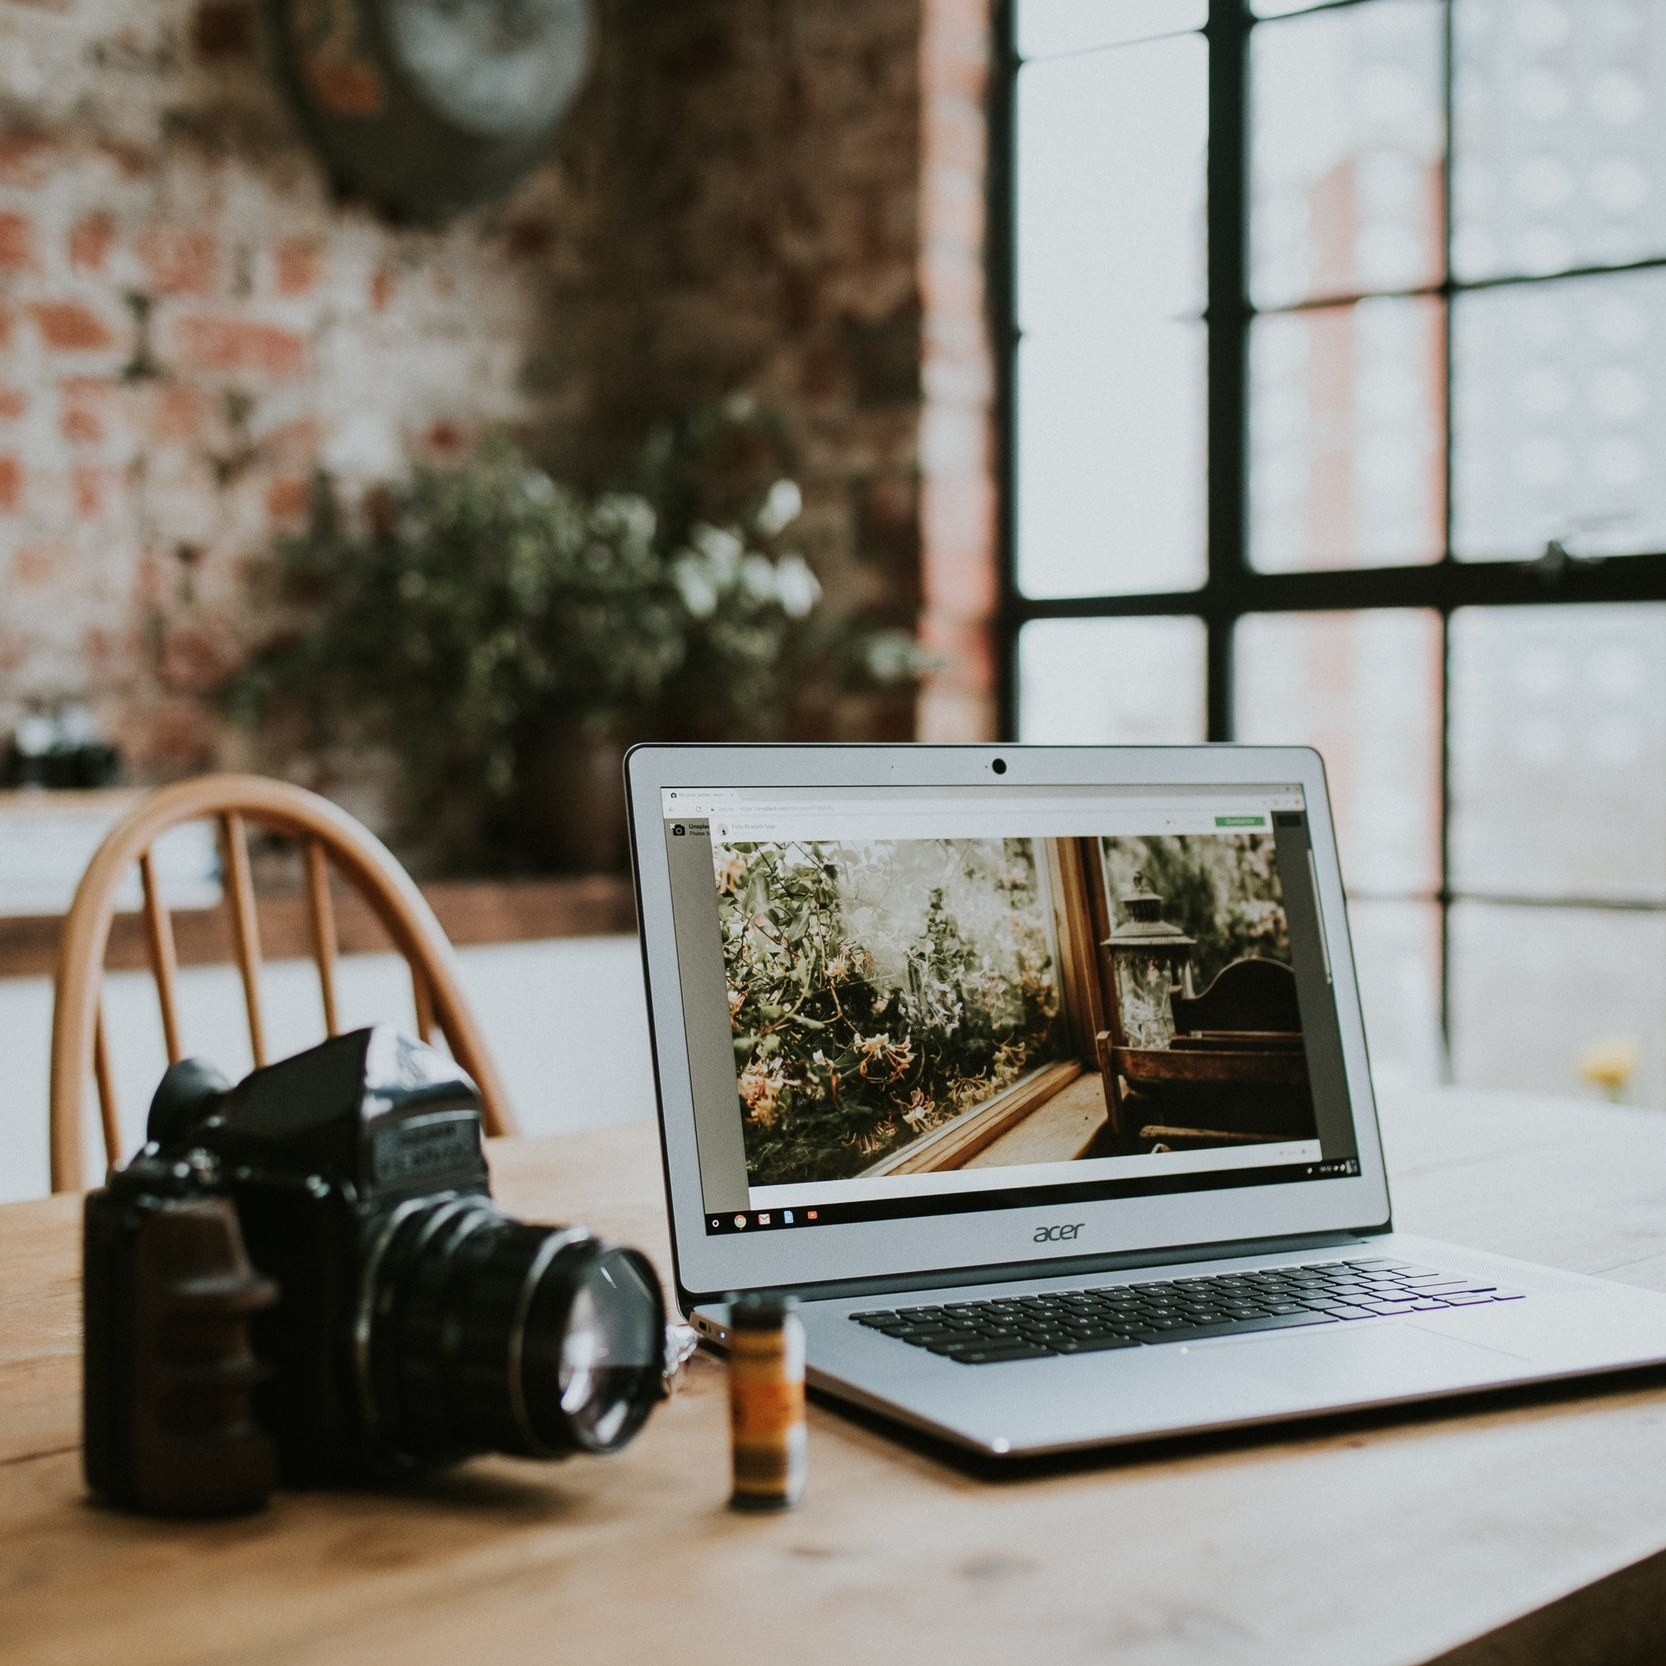 """I've sent pictures to almost everyone I know - My home office is small and I accumulate a lot of items…I felt overwhelmed by how to begin. When I booked the appointment with Monica, I felt a sense of relief. Working with her has been easy and enjoyable. She is positive and non-judgmental – great qualities for someone digging around in your """"mess.""""She helped me select low-cost storage, measure for the best fit, and purge. It's much easier to keep my office tidy now that everything has a place. It saves me time and money. I've sent pictures to almost everyone I know!Thank you!Sherry J., Account Manager"""